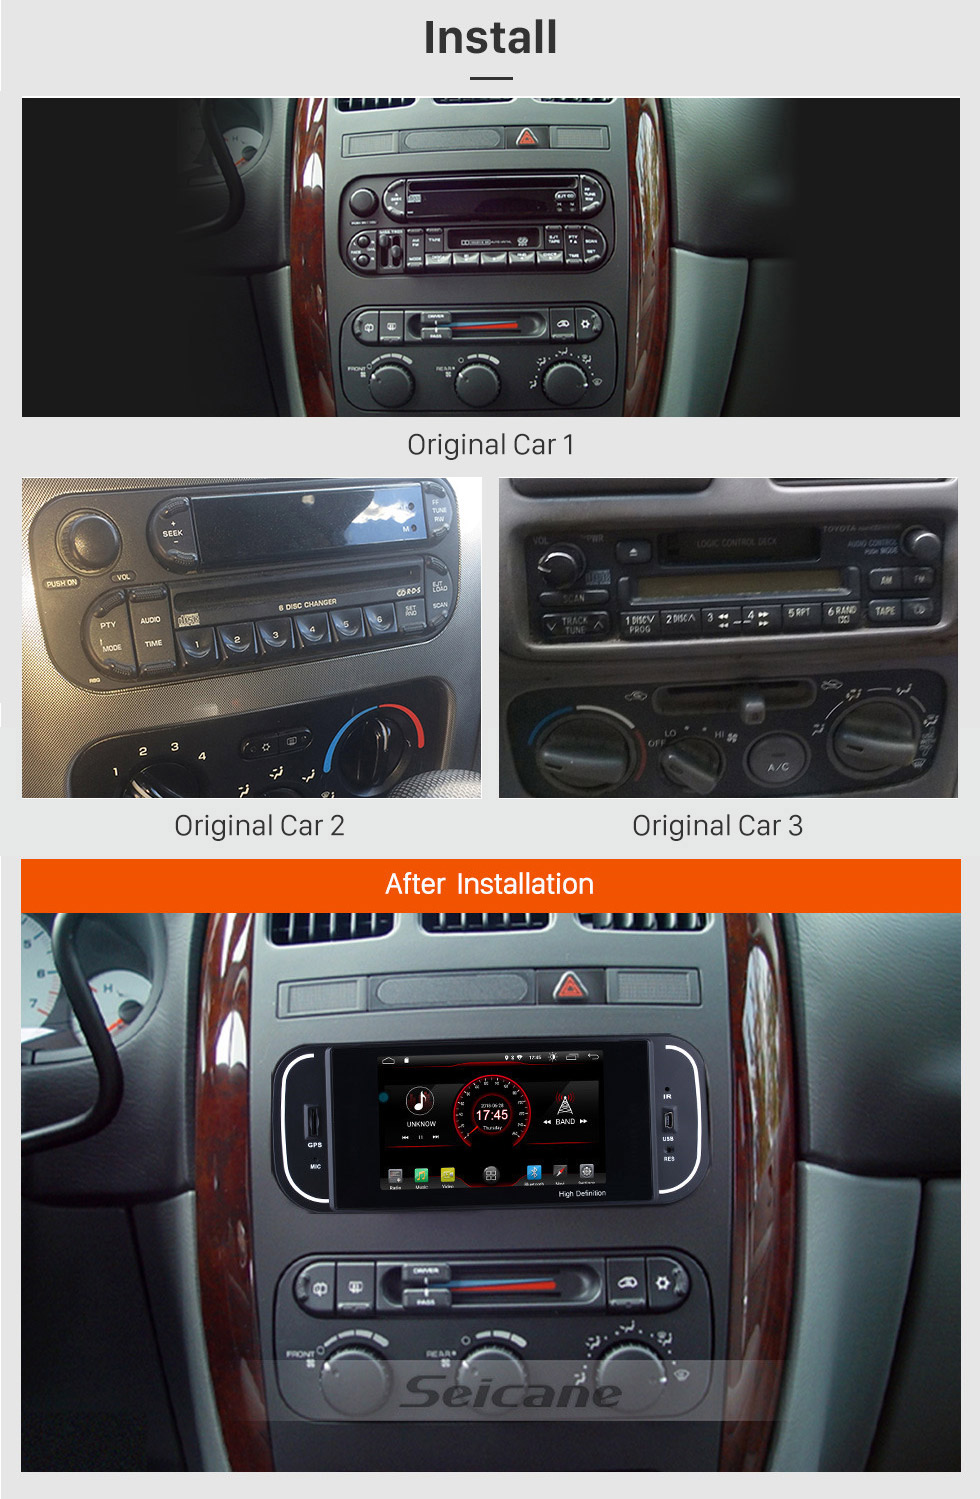 Seicane Android 8.1 HD Touch Screen 2002-2006 Dodge Ram pick-up Radio Bluetooth GPS Navigation System Support OBD2 Mirror link DVR Rearview Camera Steering Wheel Control TV Video USB SD WIFI